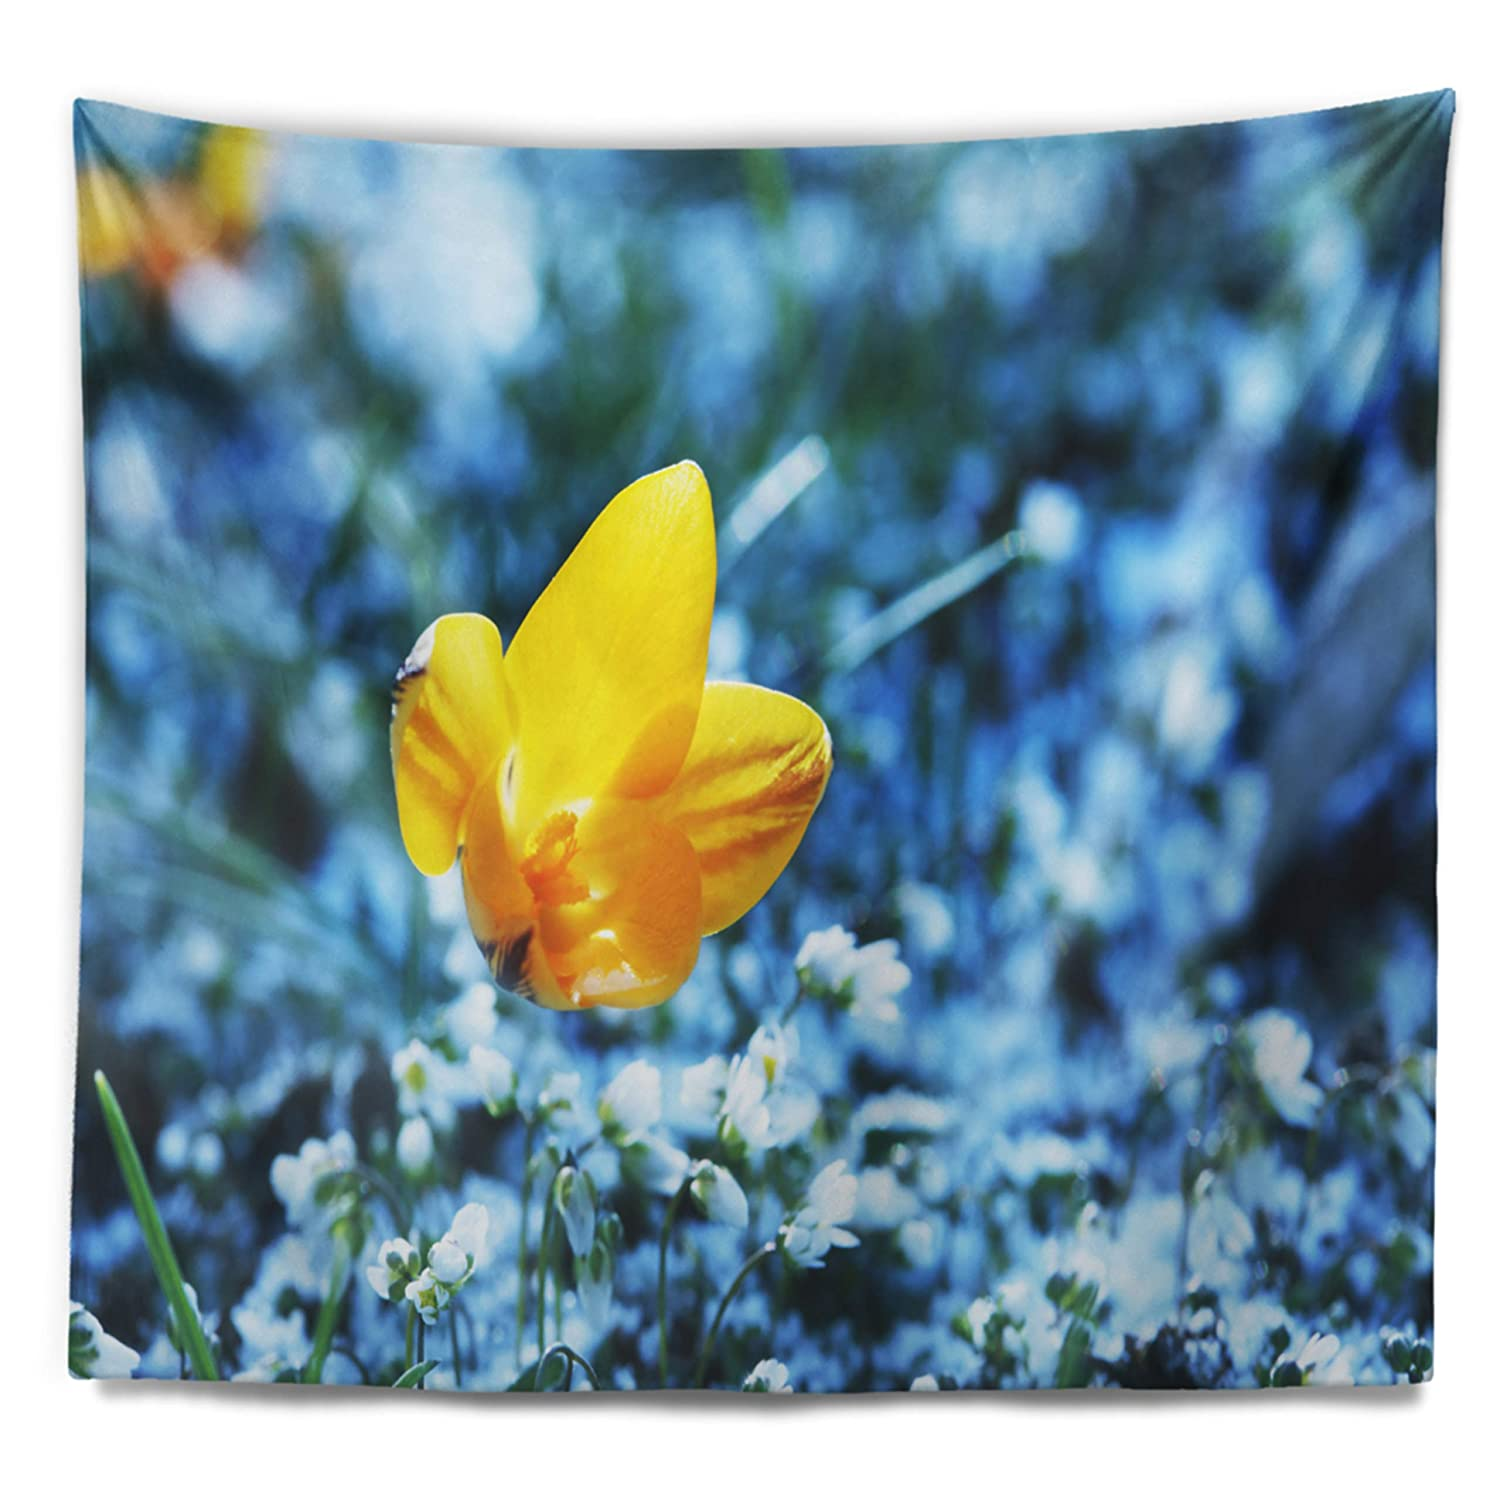 Designart TAP12625-39-32  Solitary Yellow Flower on Blue Floral Blanket D/écor Art for Home and Office Wall Tapestry Medium x 32 in Created On Lightweight Polyester Fabric 39 in